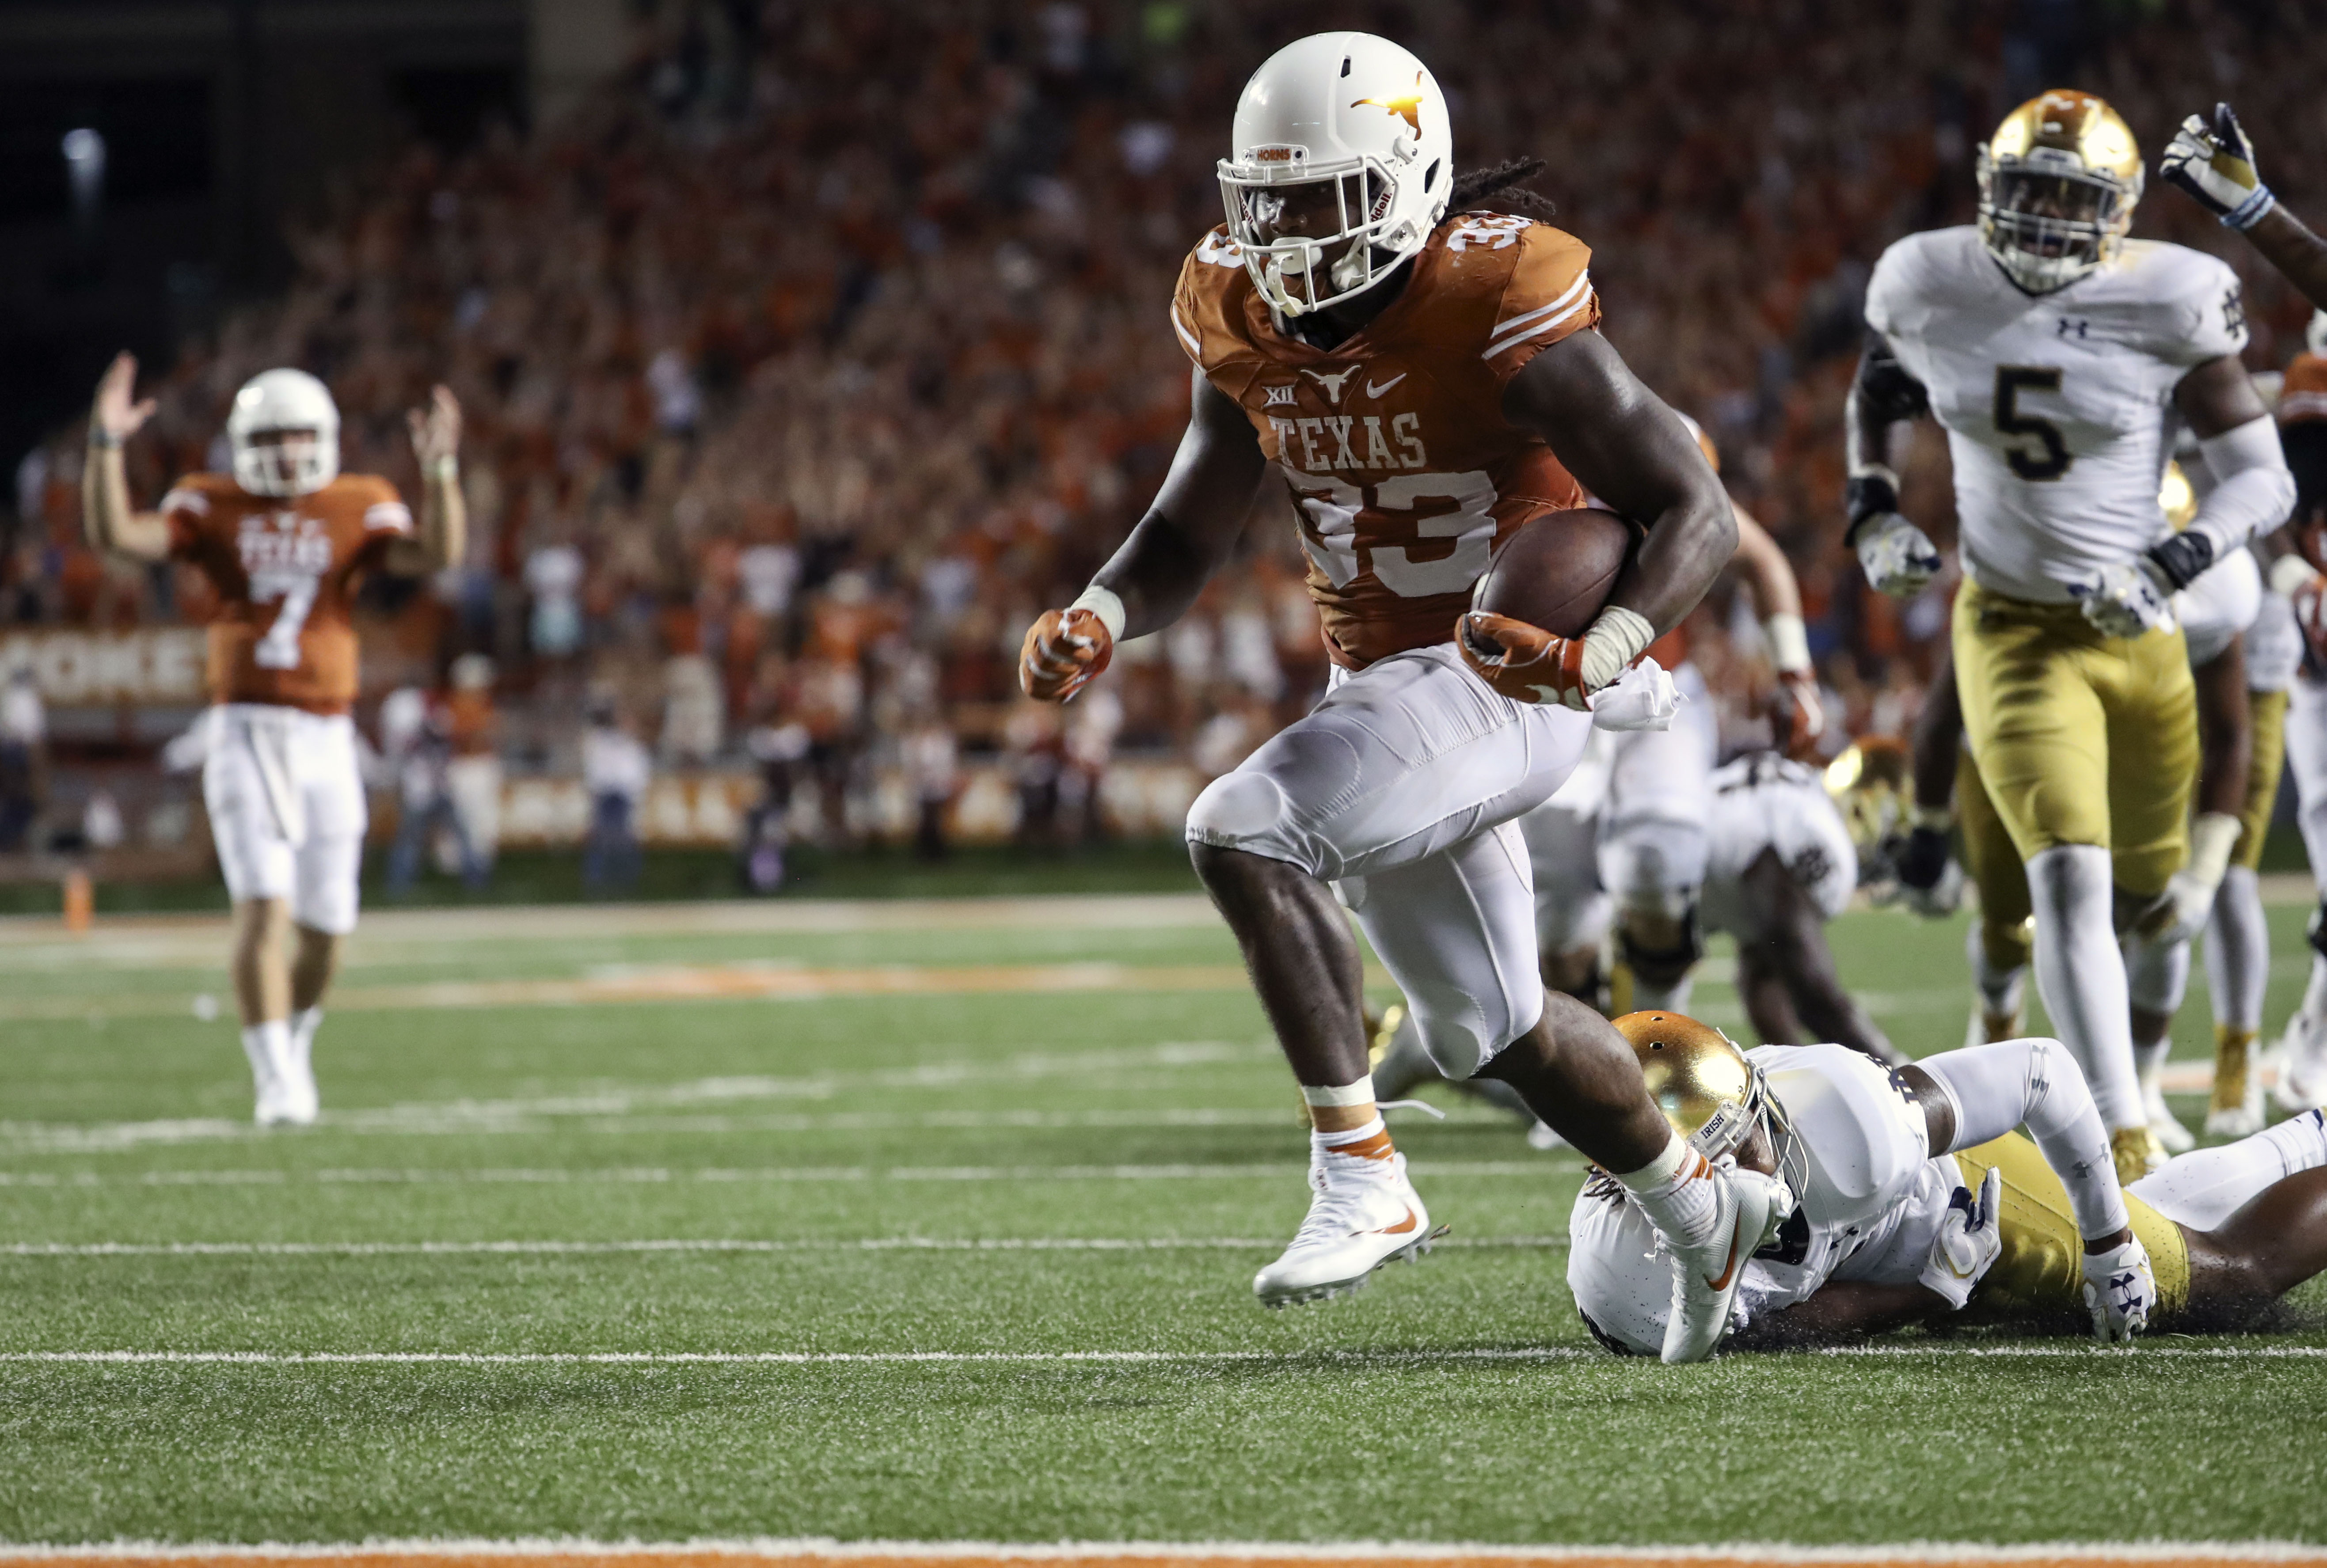 Sep 4, 2016; Austin, TX, USA; Texas Longhorns running back D'Onta Foreman (33) scores a touchdown during the game against the Notre Dame Fighting Irish at Darrell K Royal-Texas Memorial Stadium. Mandatory Credit: Kevin Jairaj-USA TODAY Sports